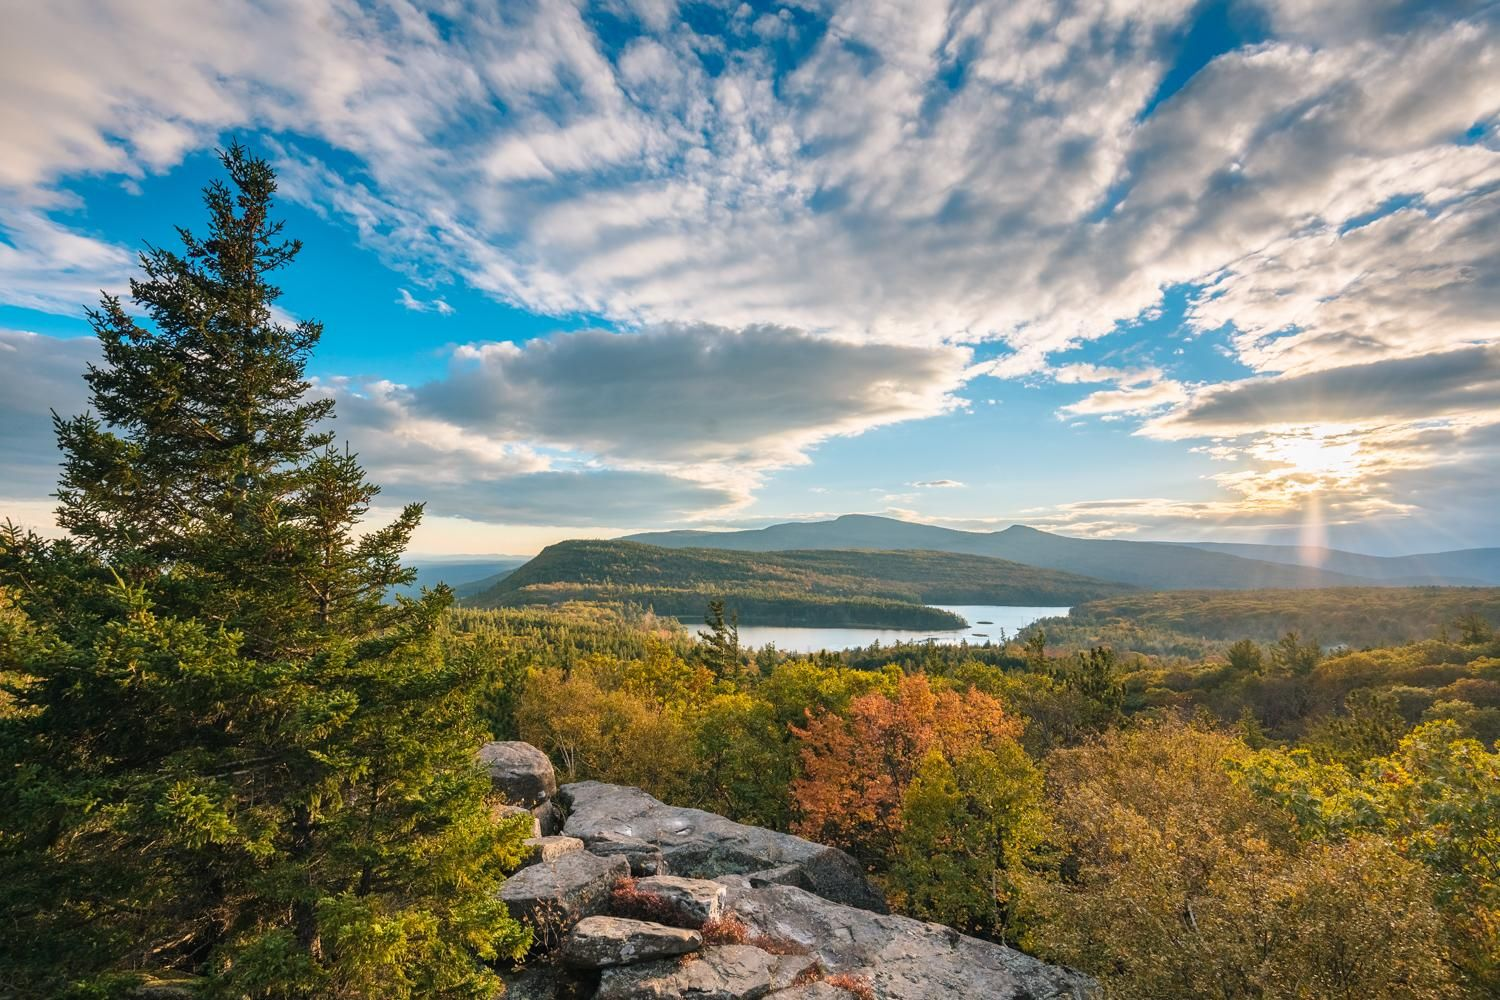 Pin by Erna Jaksic on Nature Catskill mountains, Outdoor